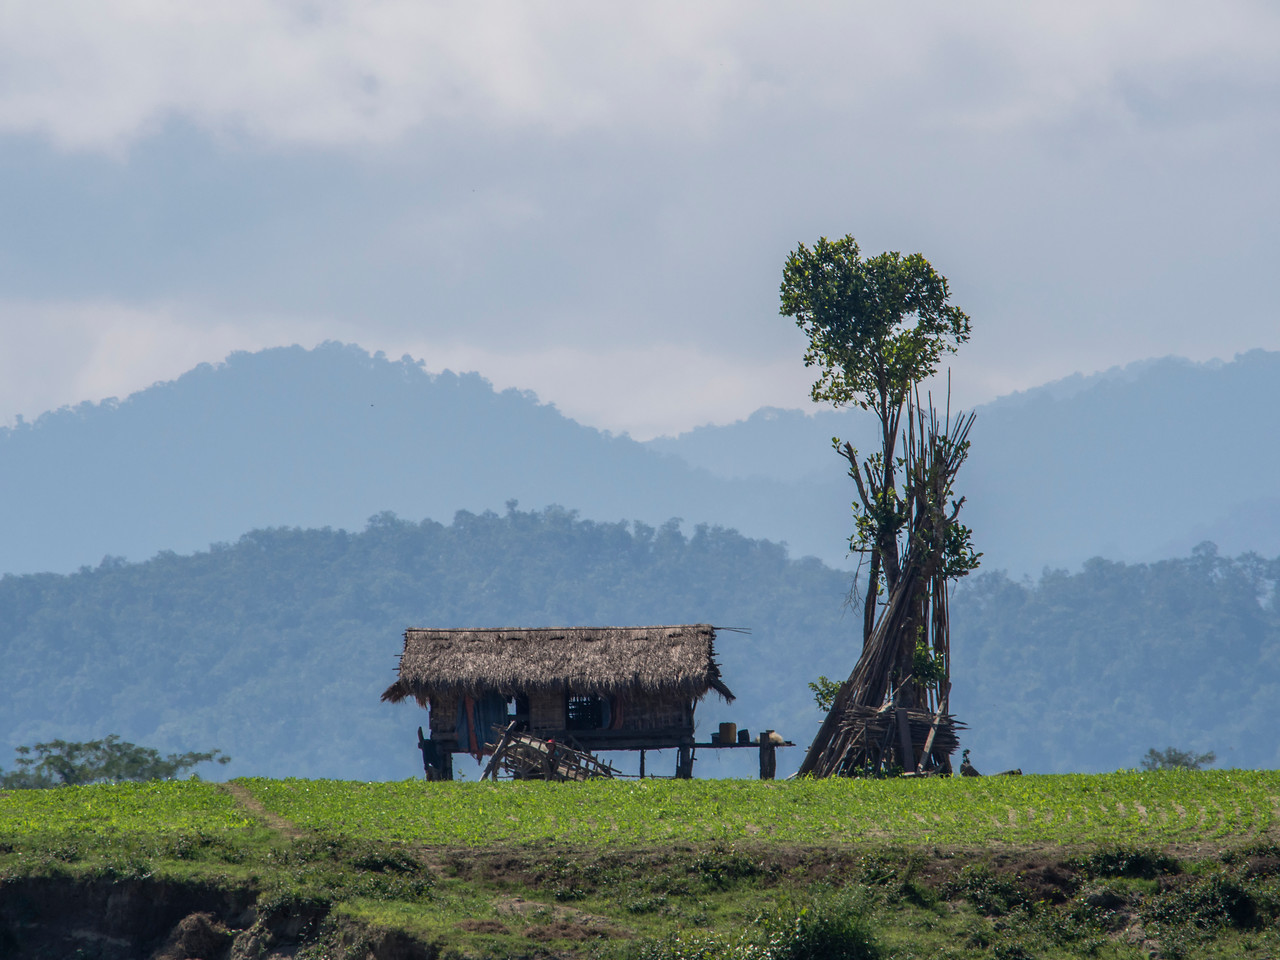 Thatch home with tree on the banks of the Chindwin River